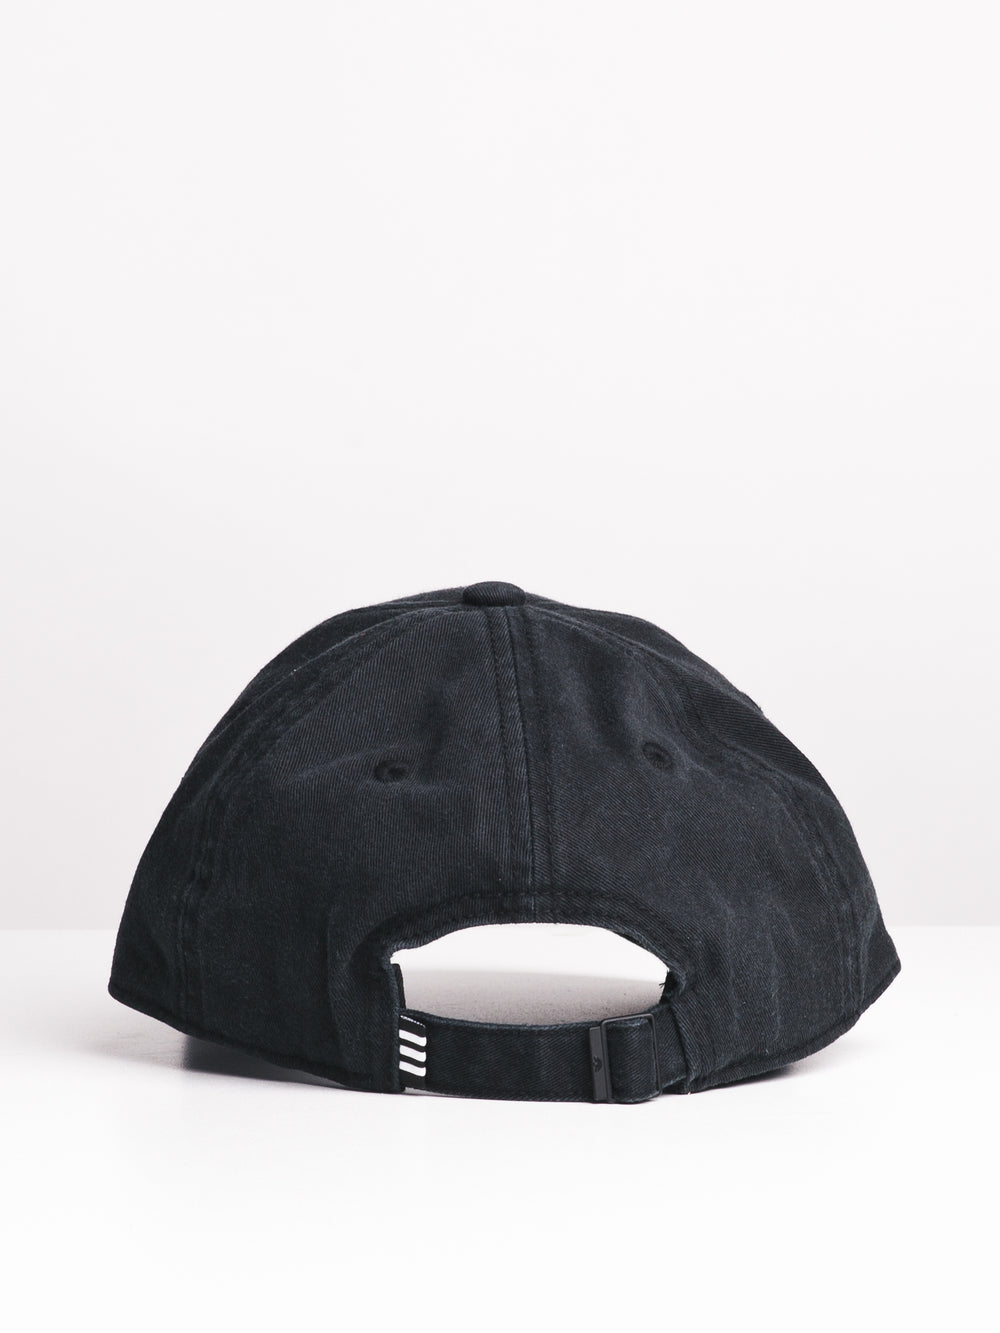 ACID WASHED CAP - BLACK/WHITE